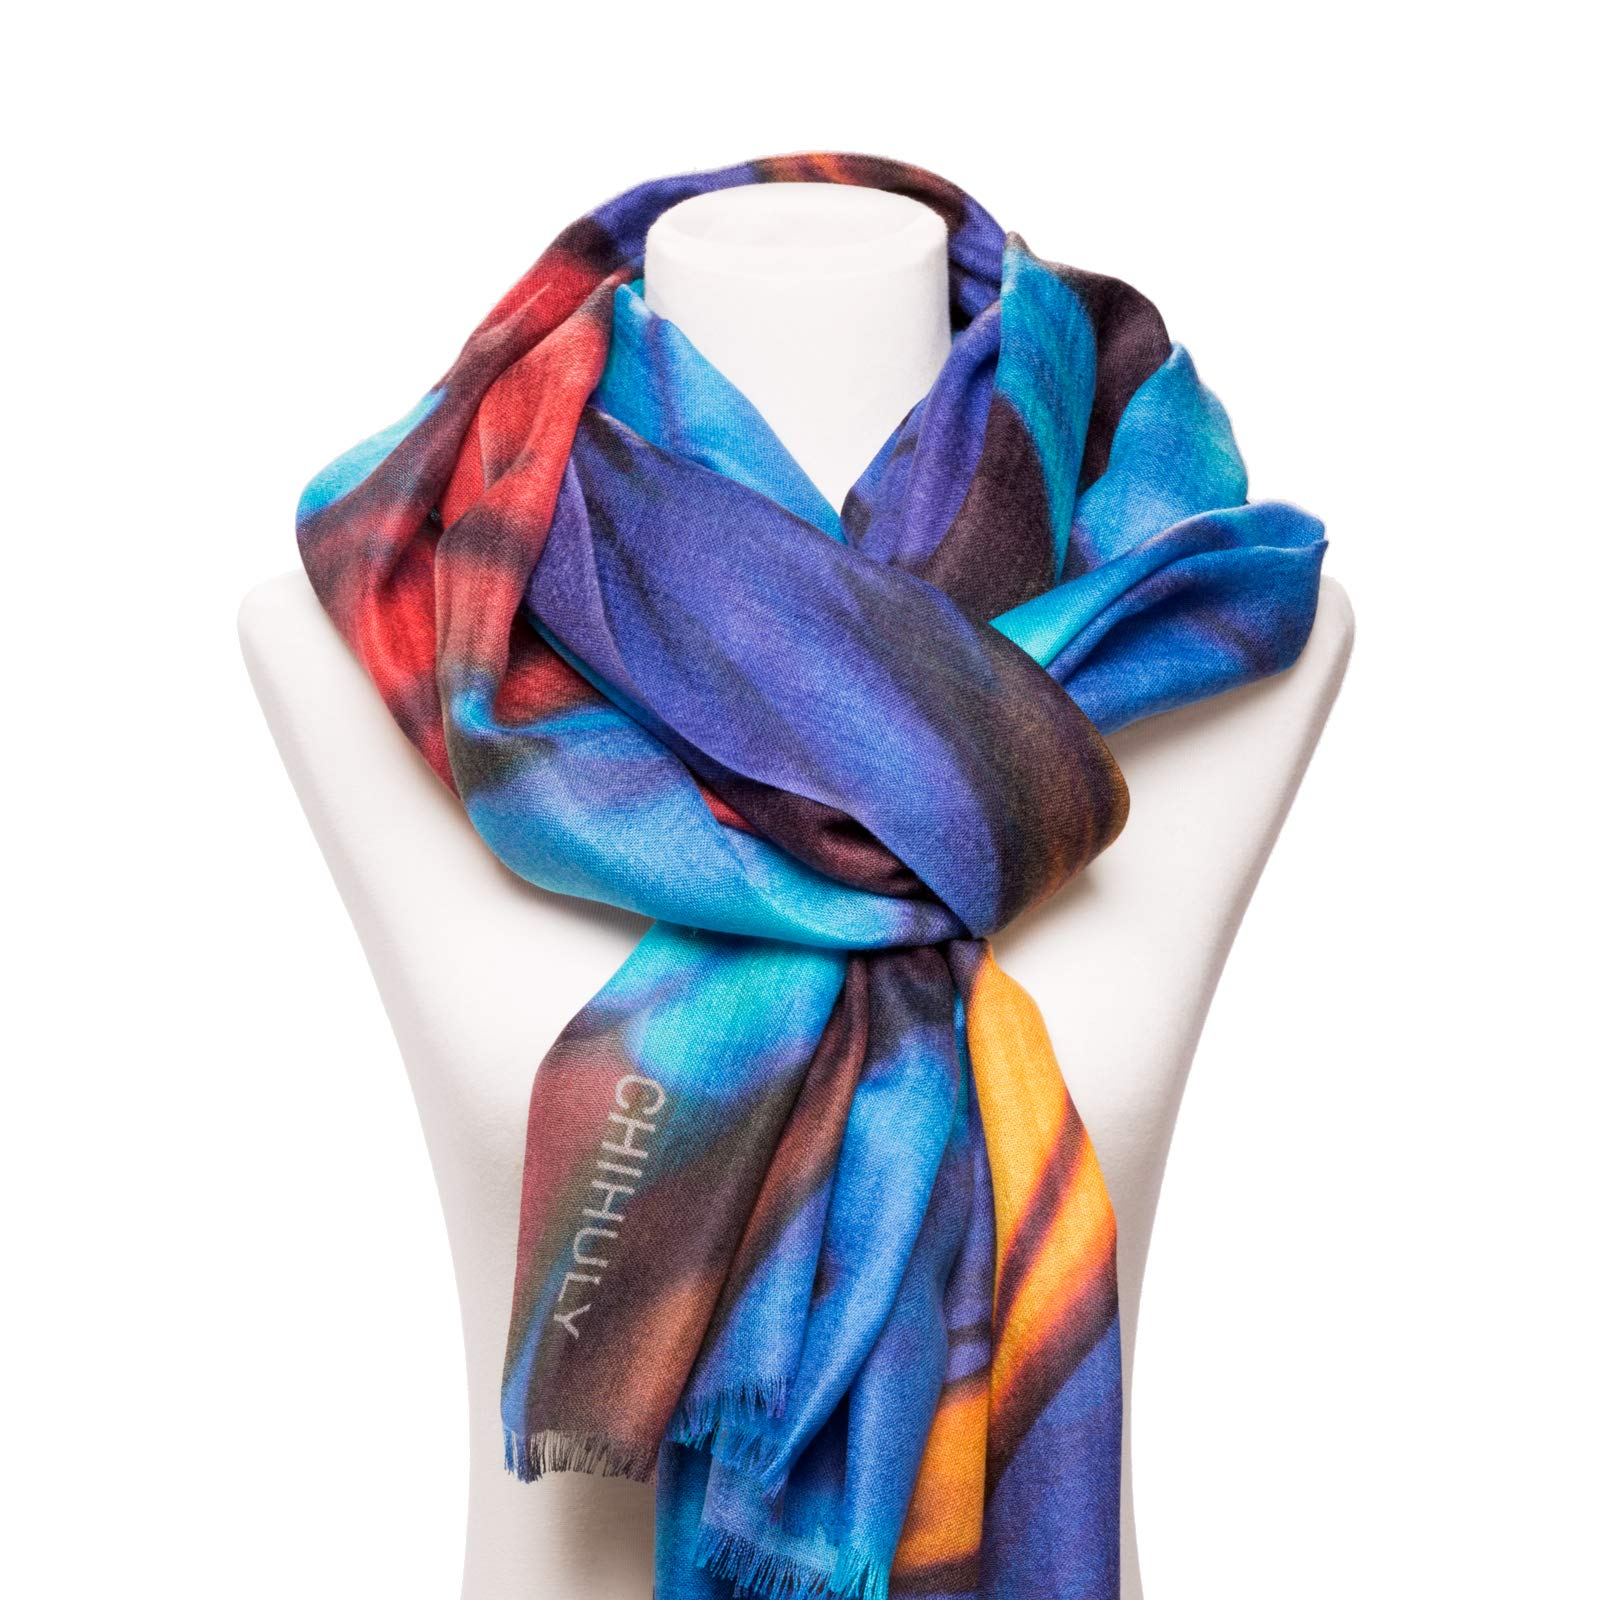 Chihuly Scarf No. 5